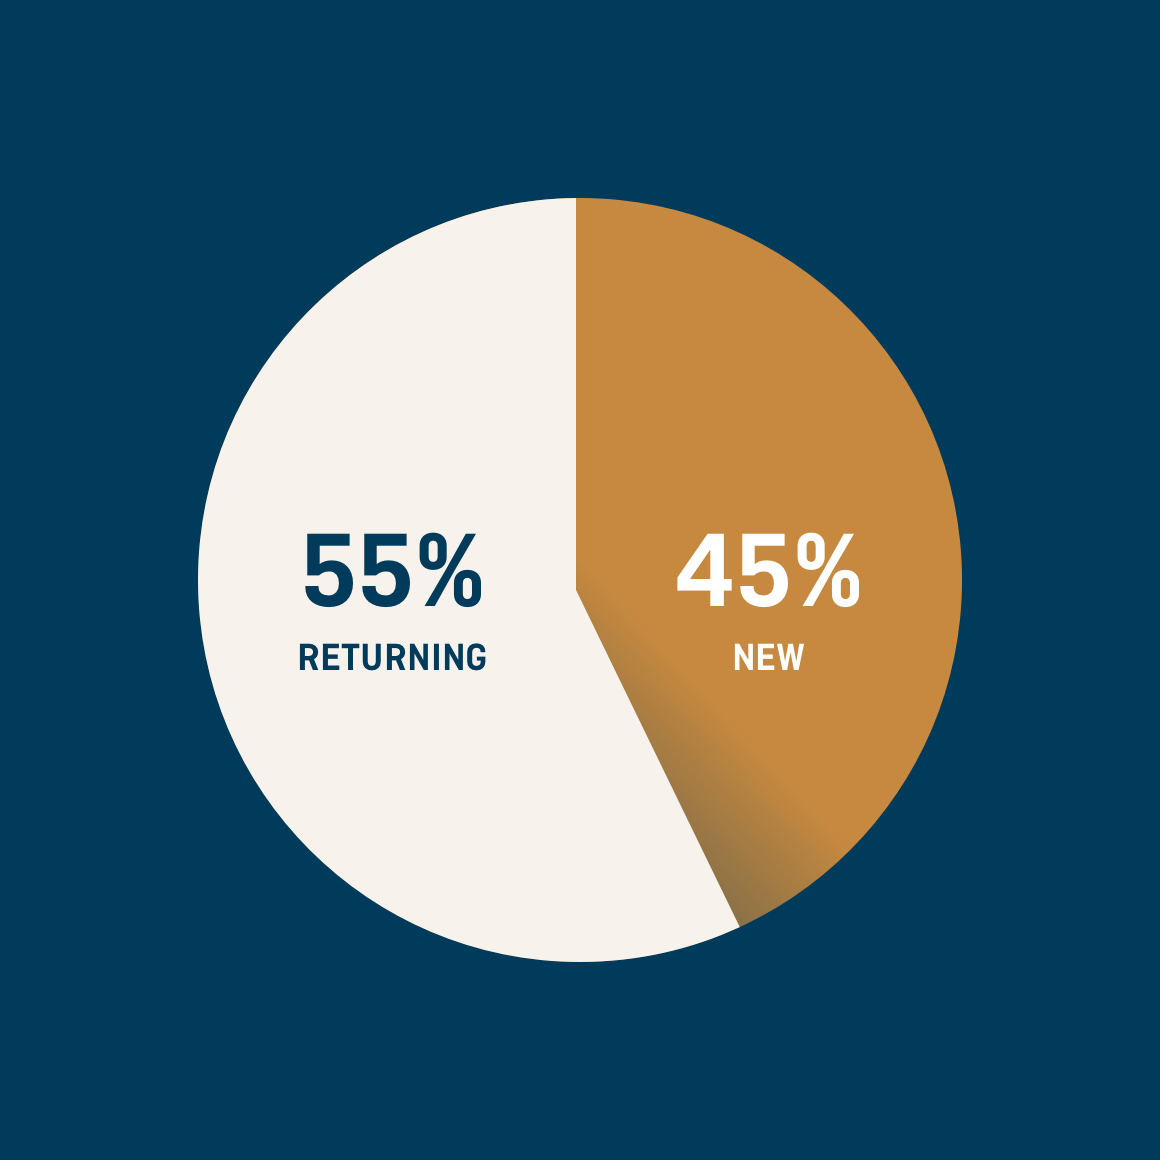 Pie chart showing user type 55% returning and 45% new